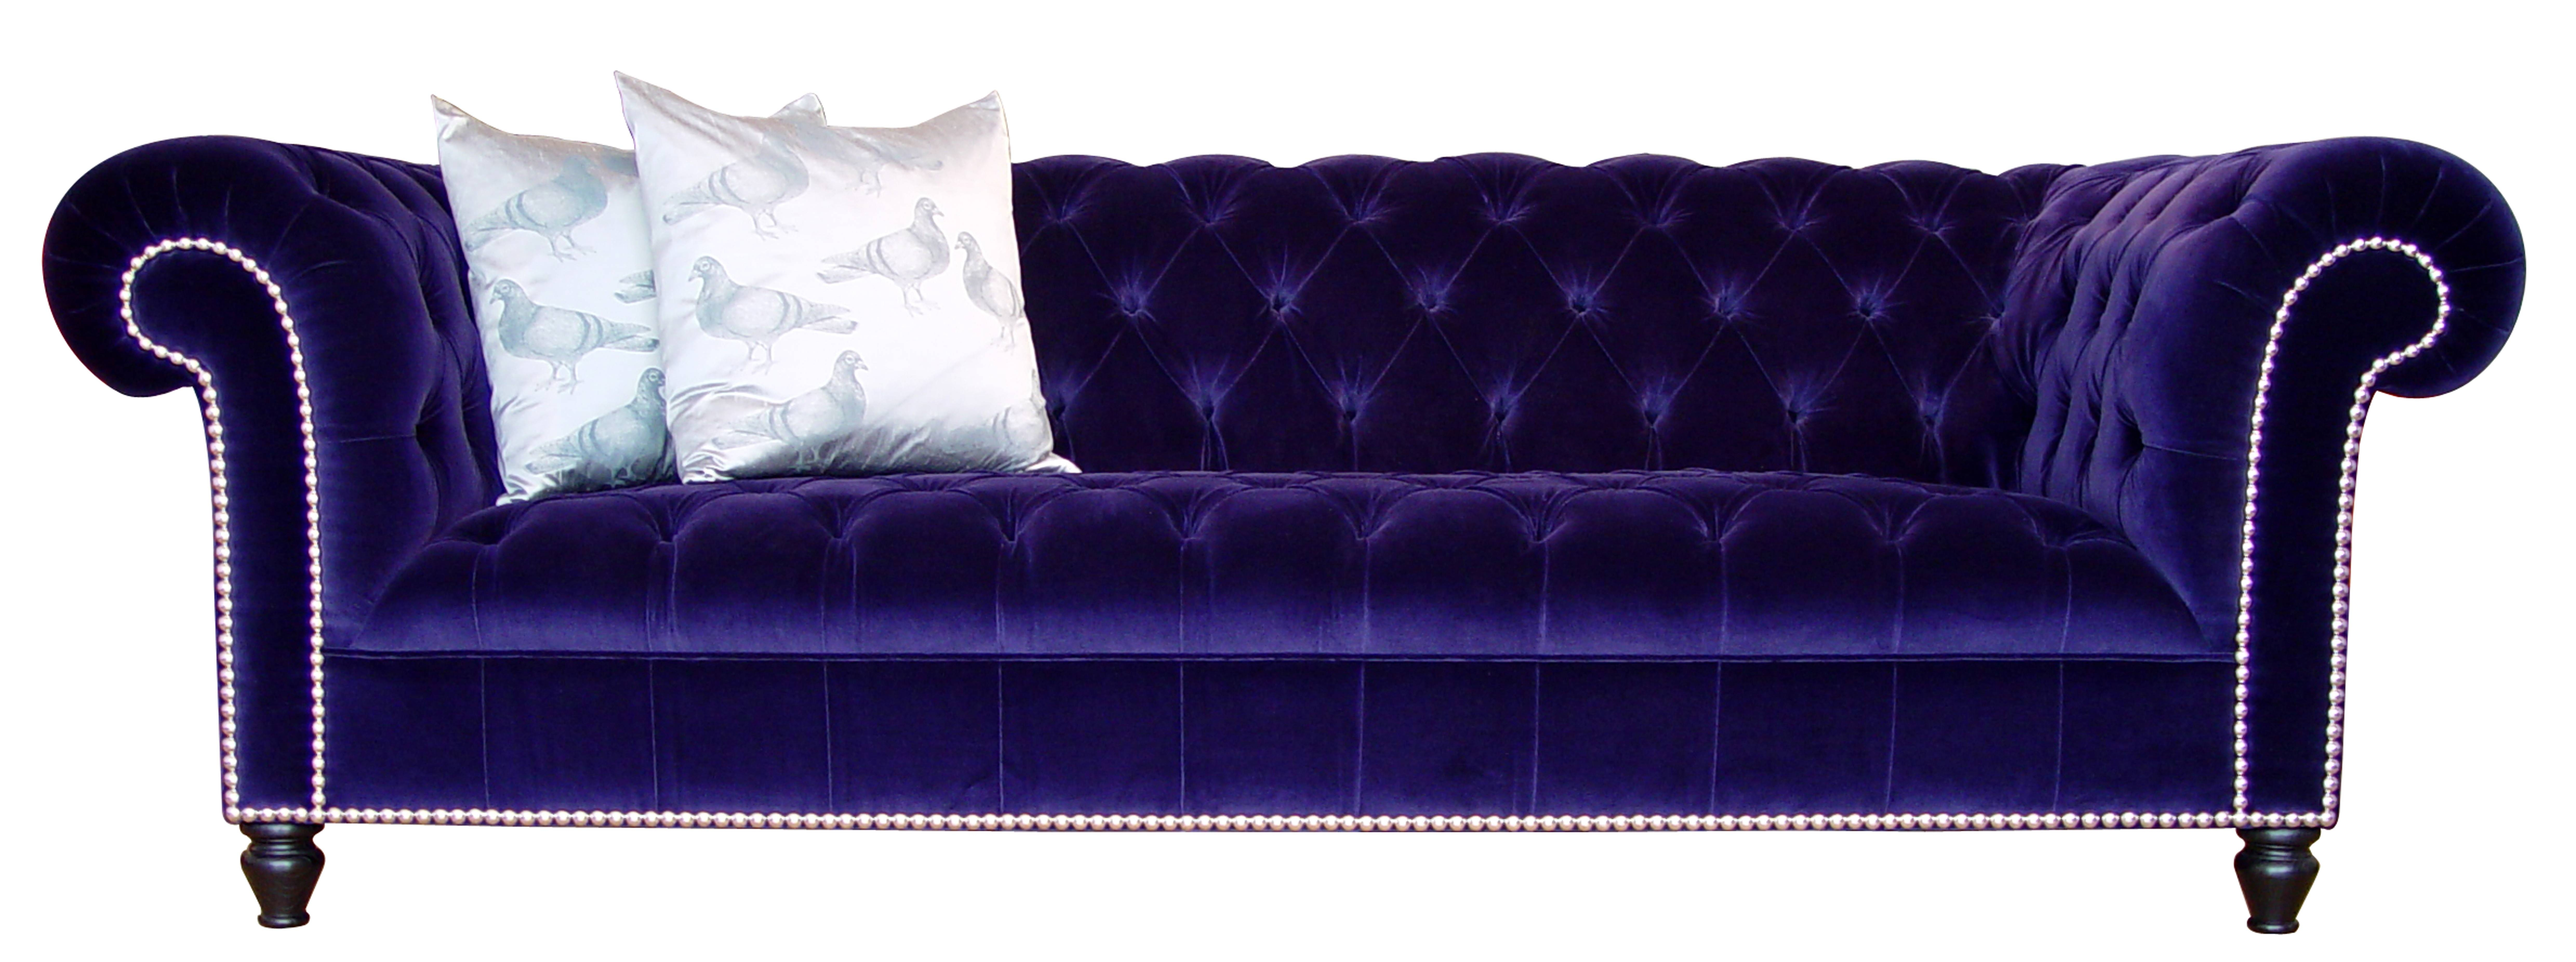 Design Classics #20: The Chesterfield Sofa - Mad About The House within Purple Chesterfield Sofas (Image 4 of 15)